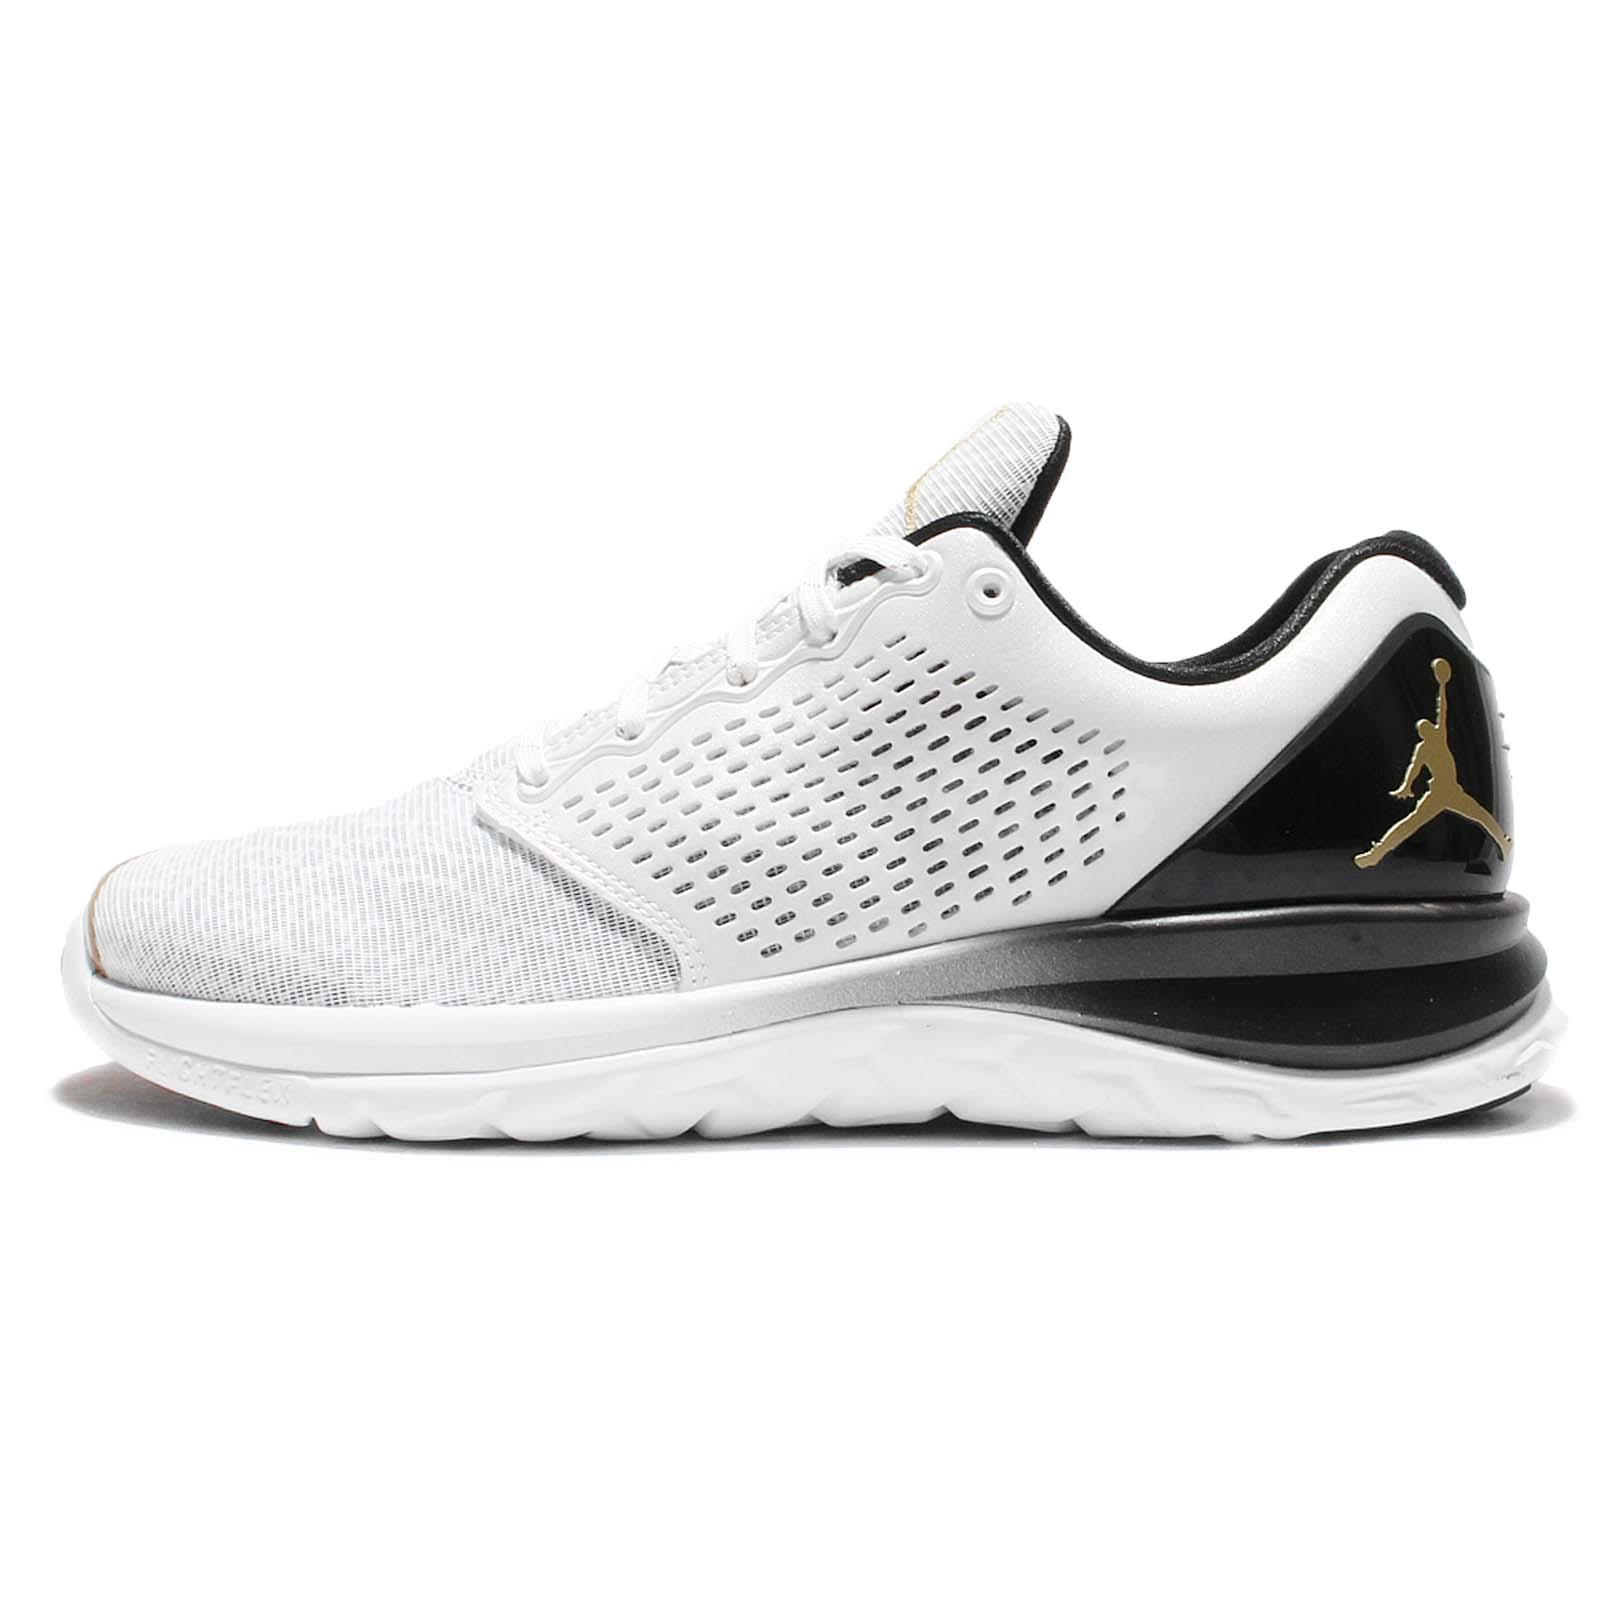 nike jordan trainer st prem premium white gold mens cross training 843732 103. Black Bedroom Furniture Sets. Home Design Ideas